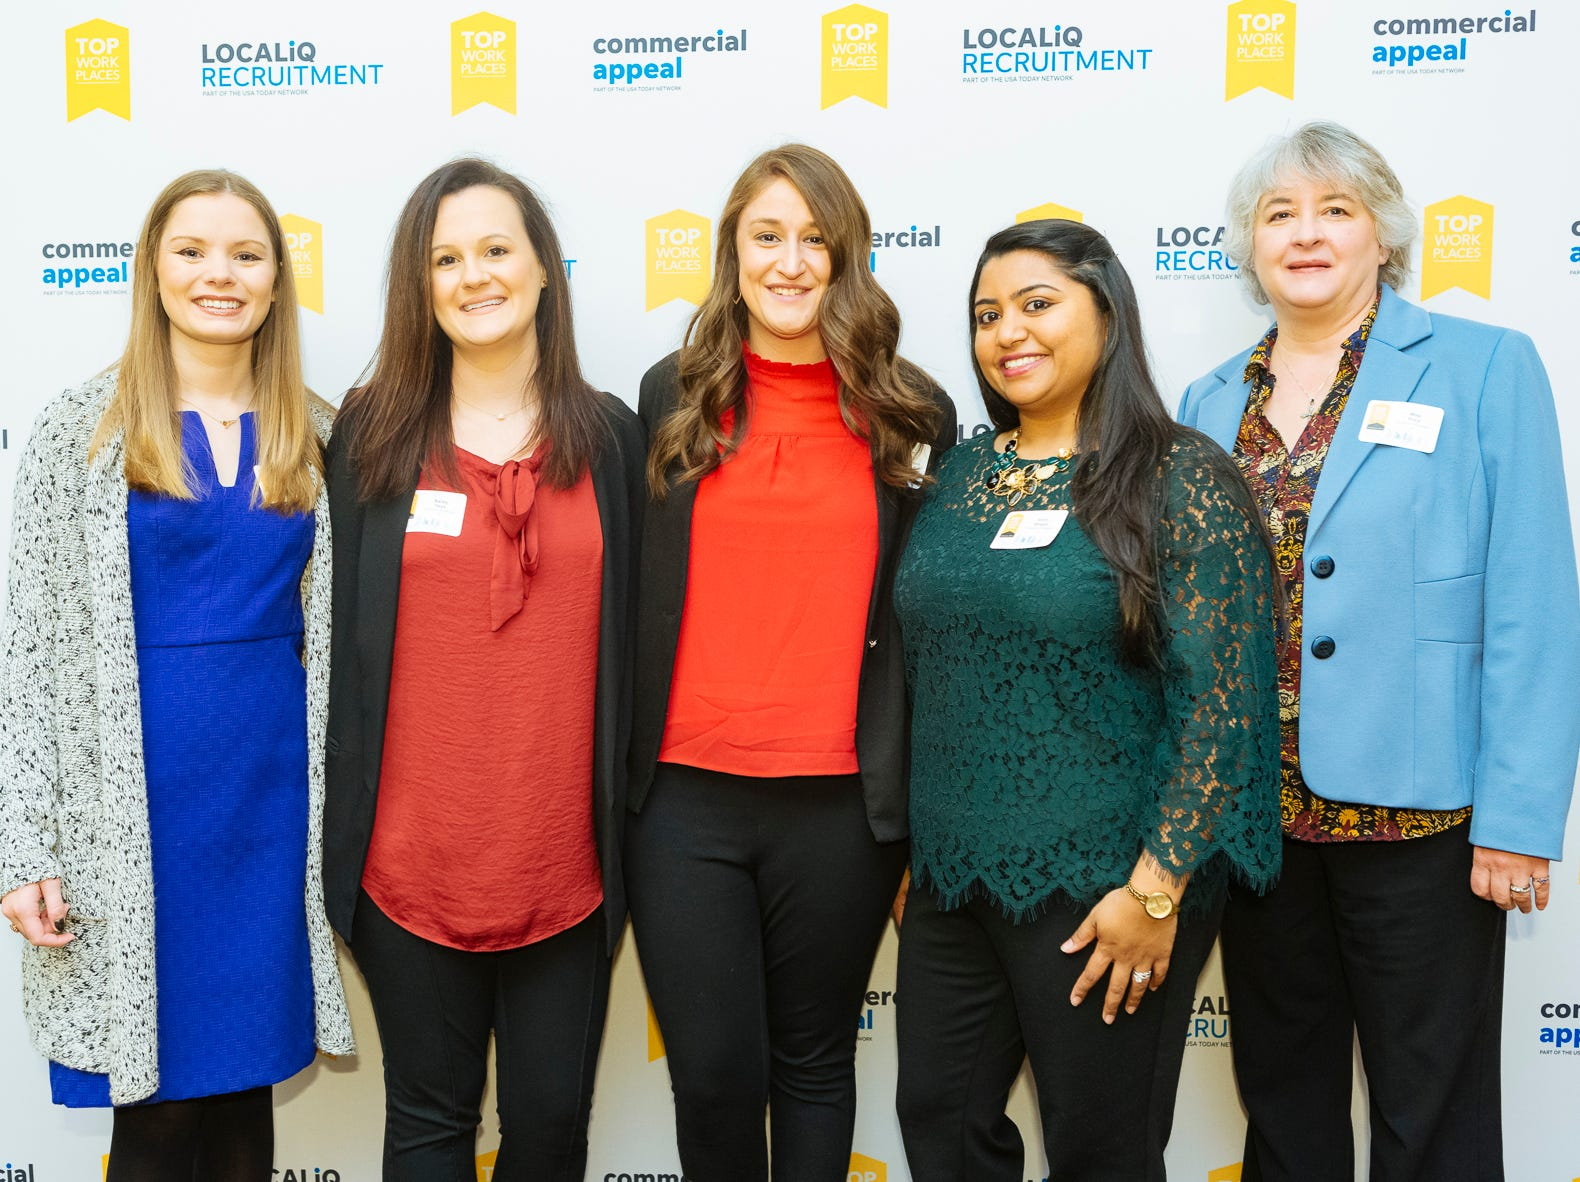 Scenes from the Commercial Appeal Top Workplaces 2018 winners breakfast held Thursday, Nov. 29, 2018 at the Hilton Memphis.